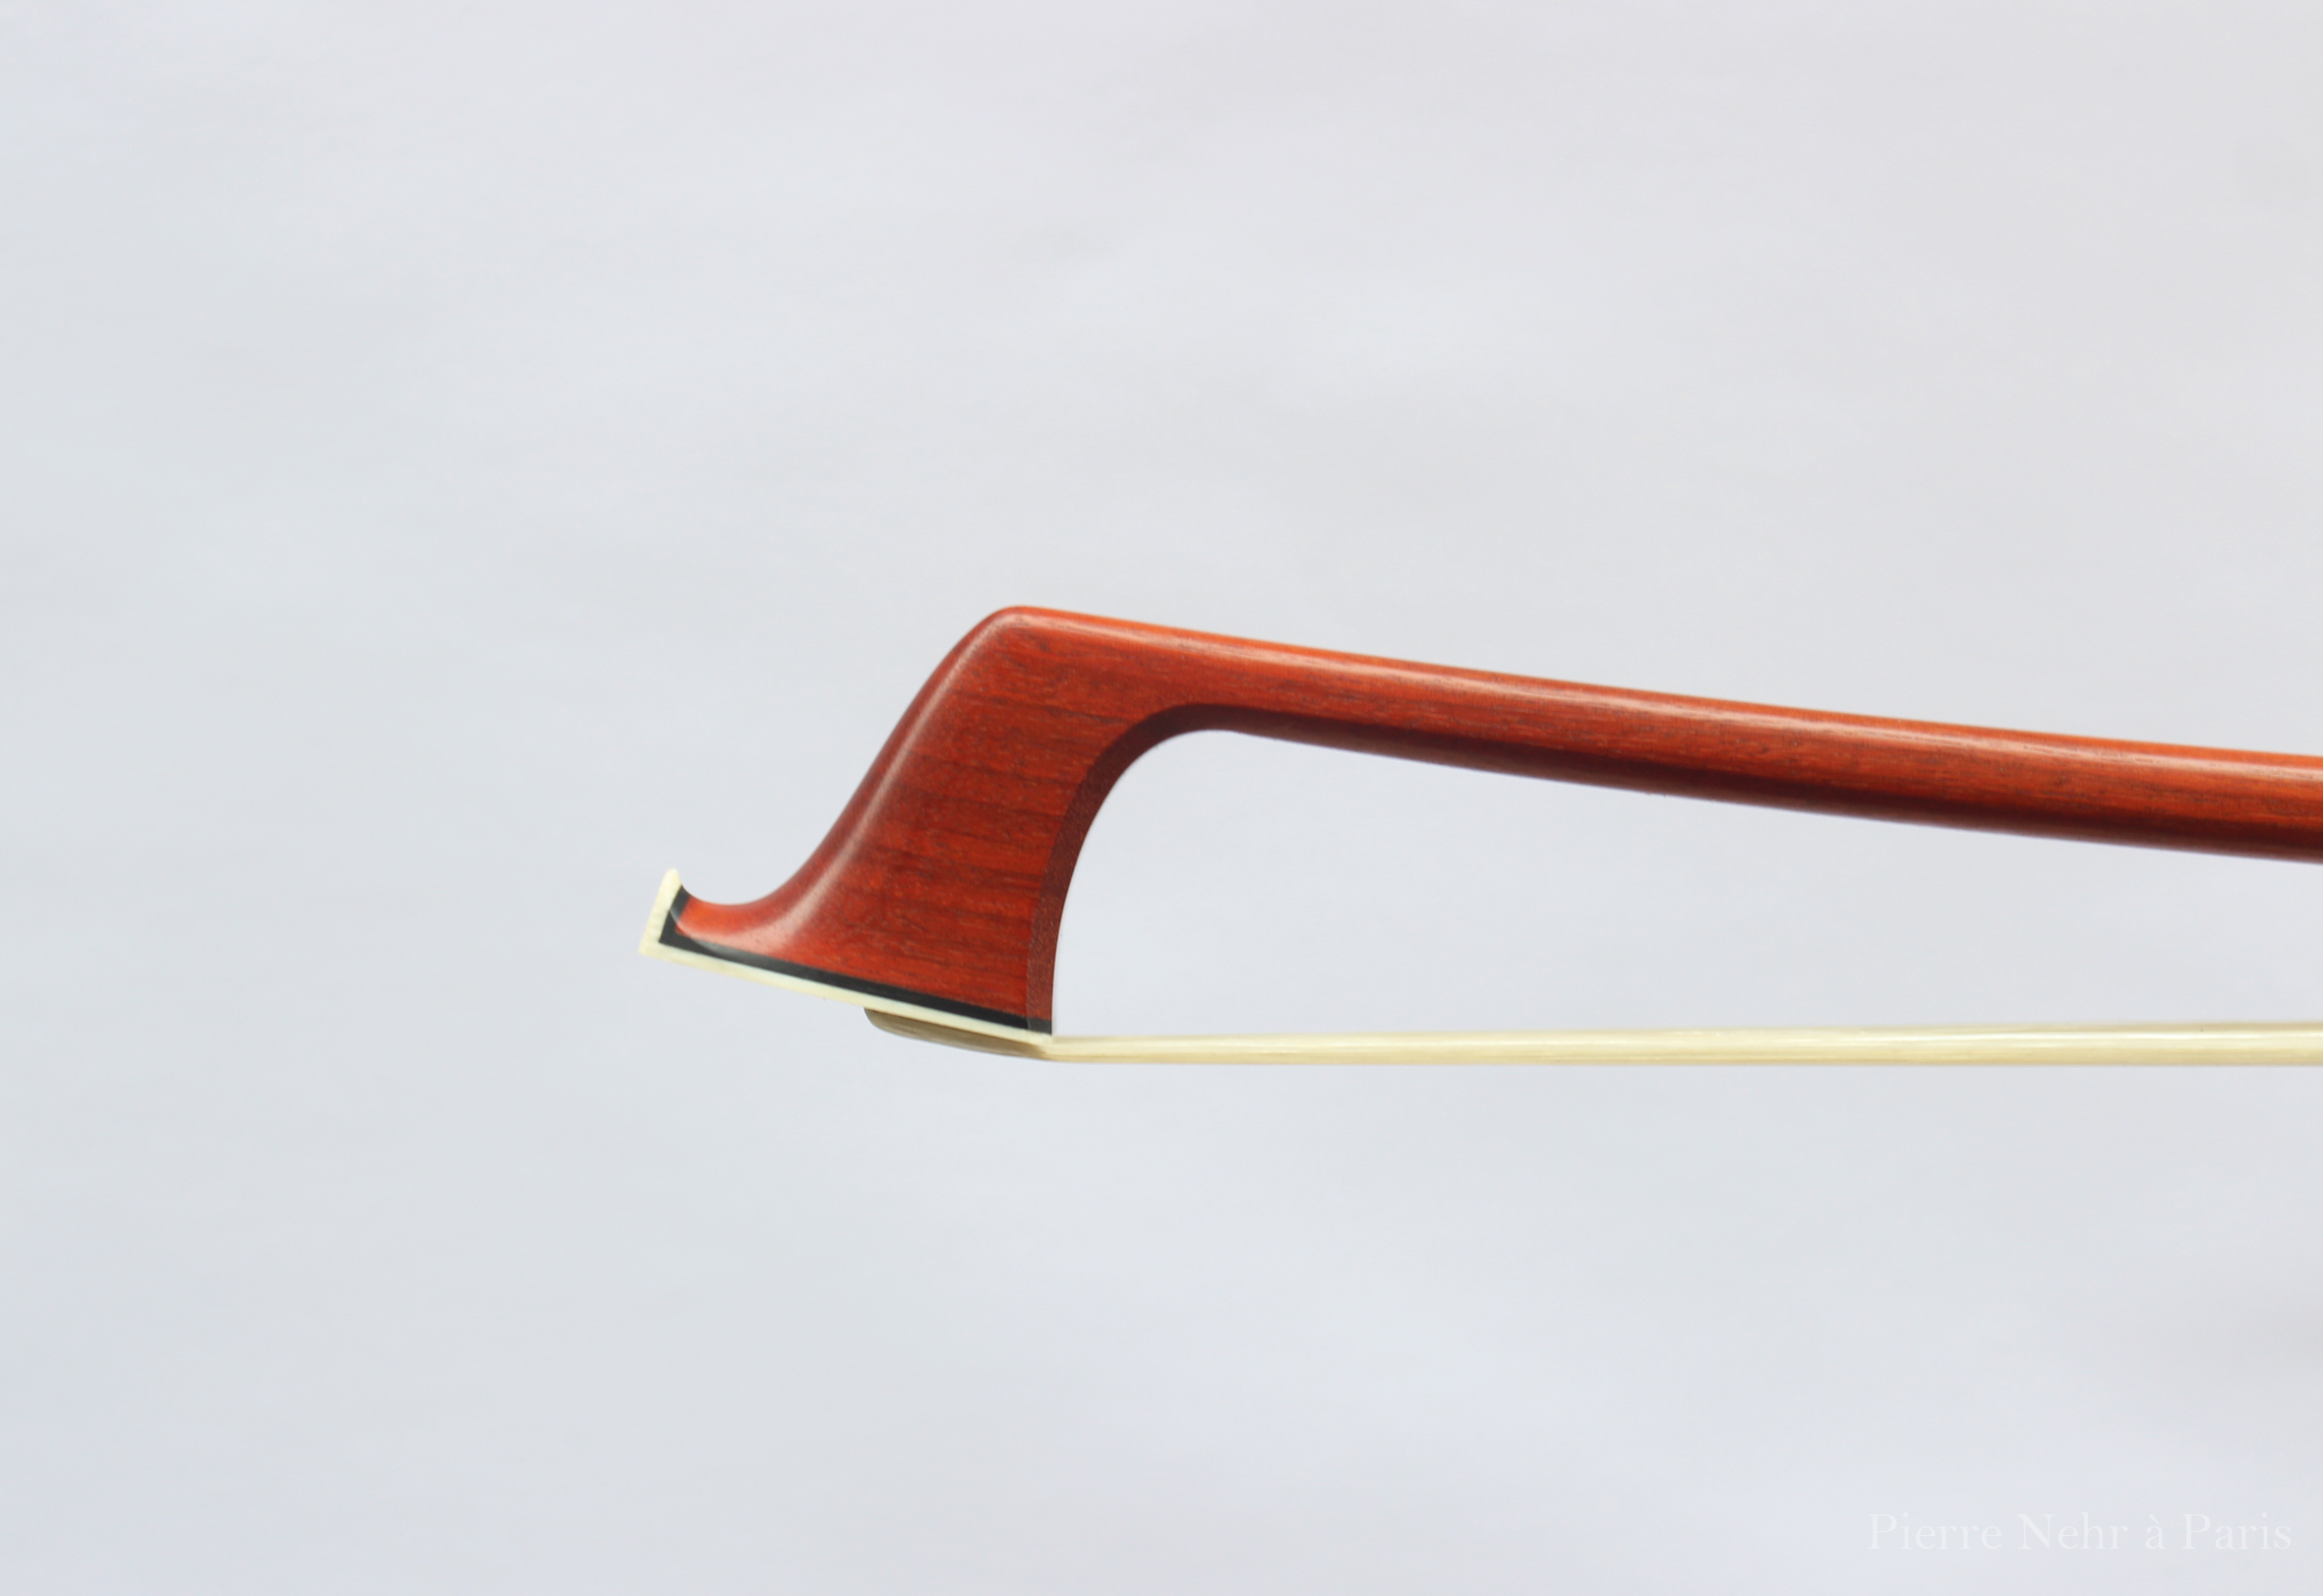 Cello bow #11